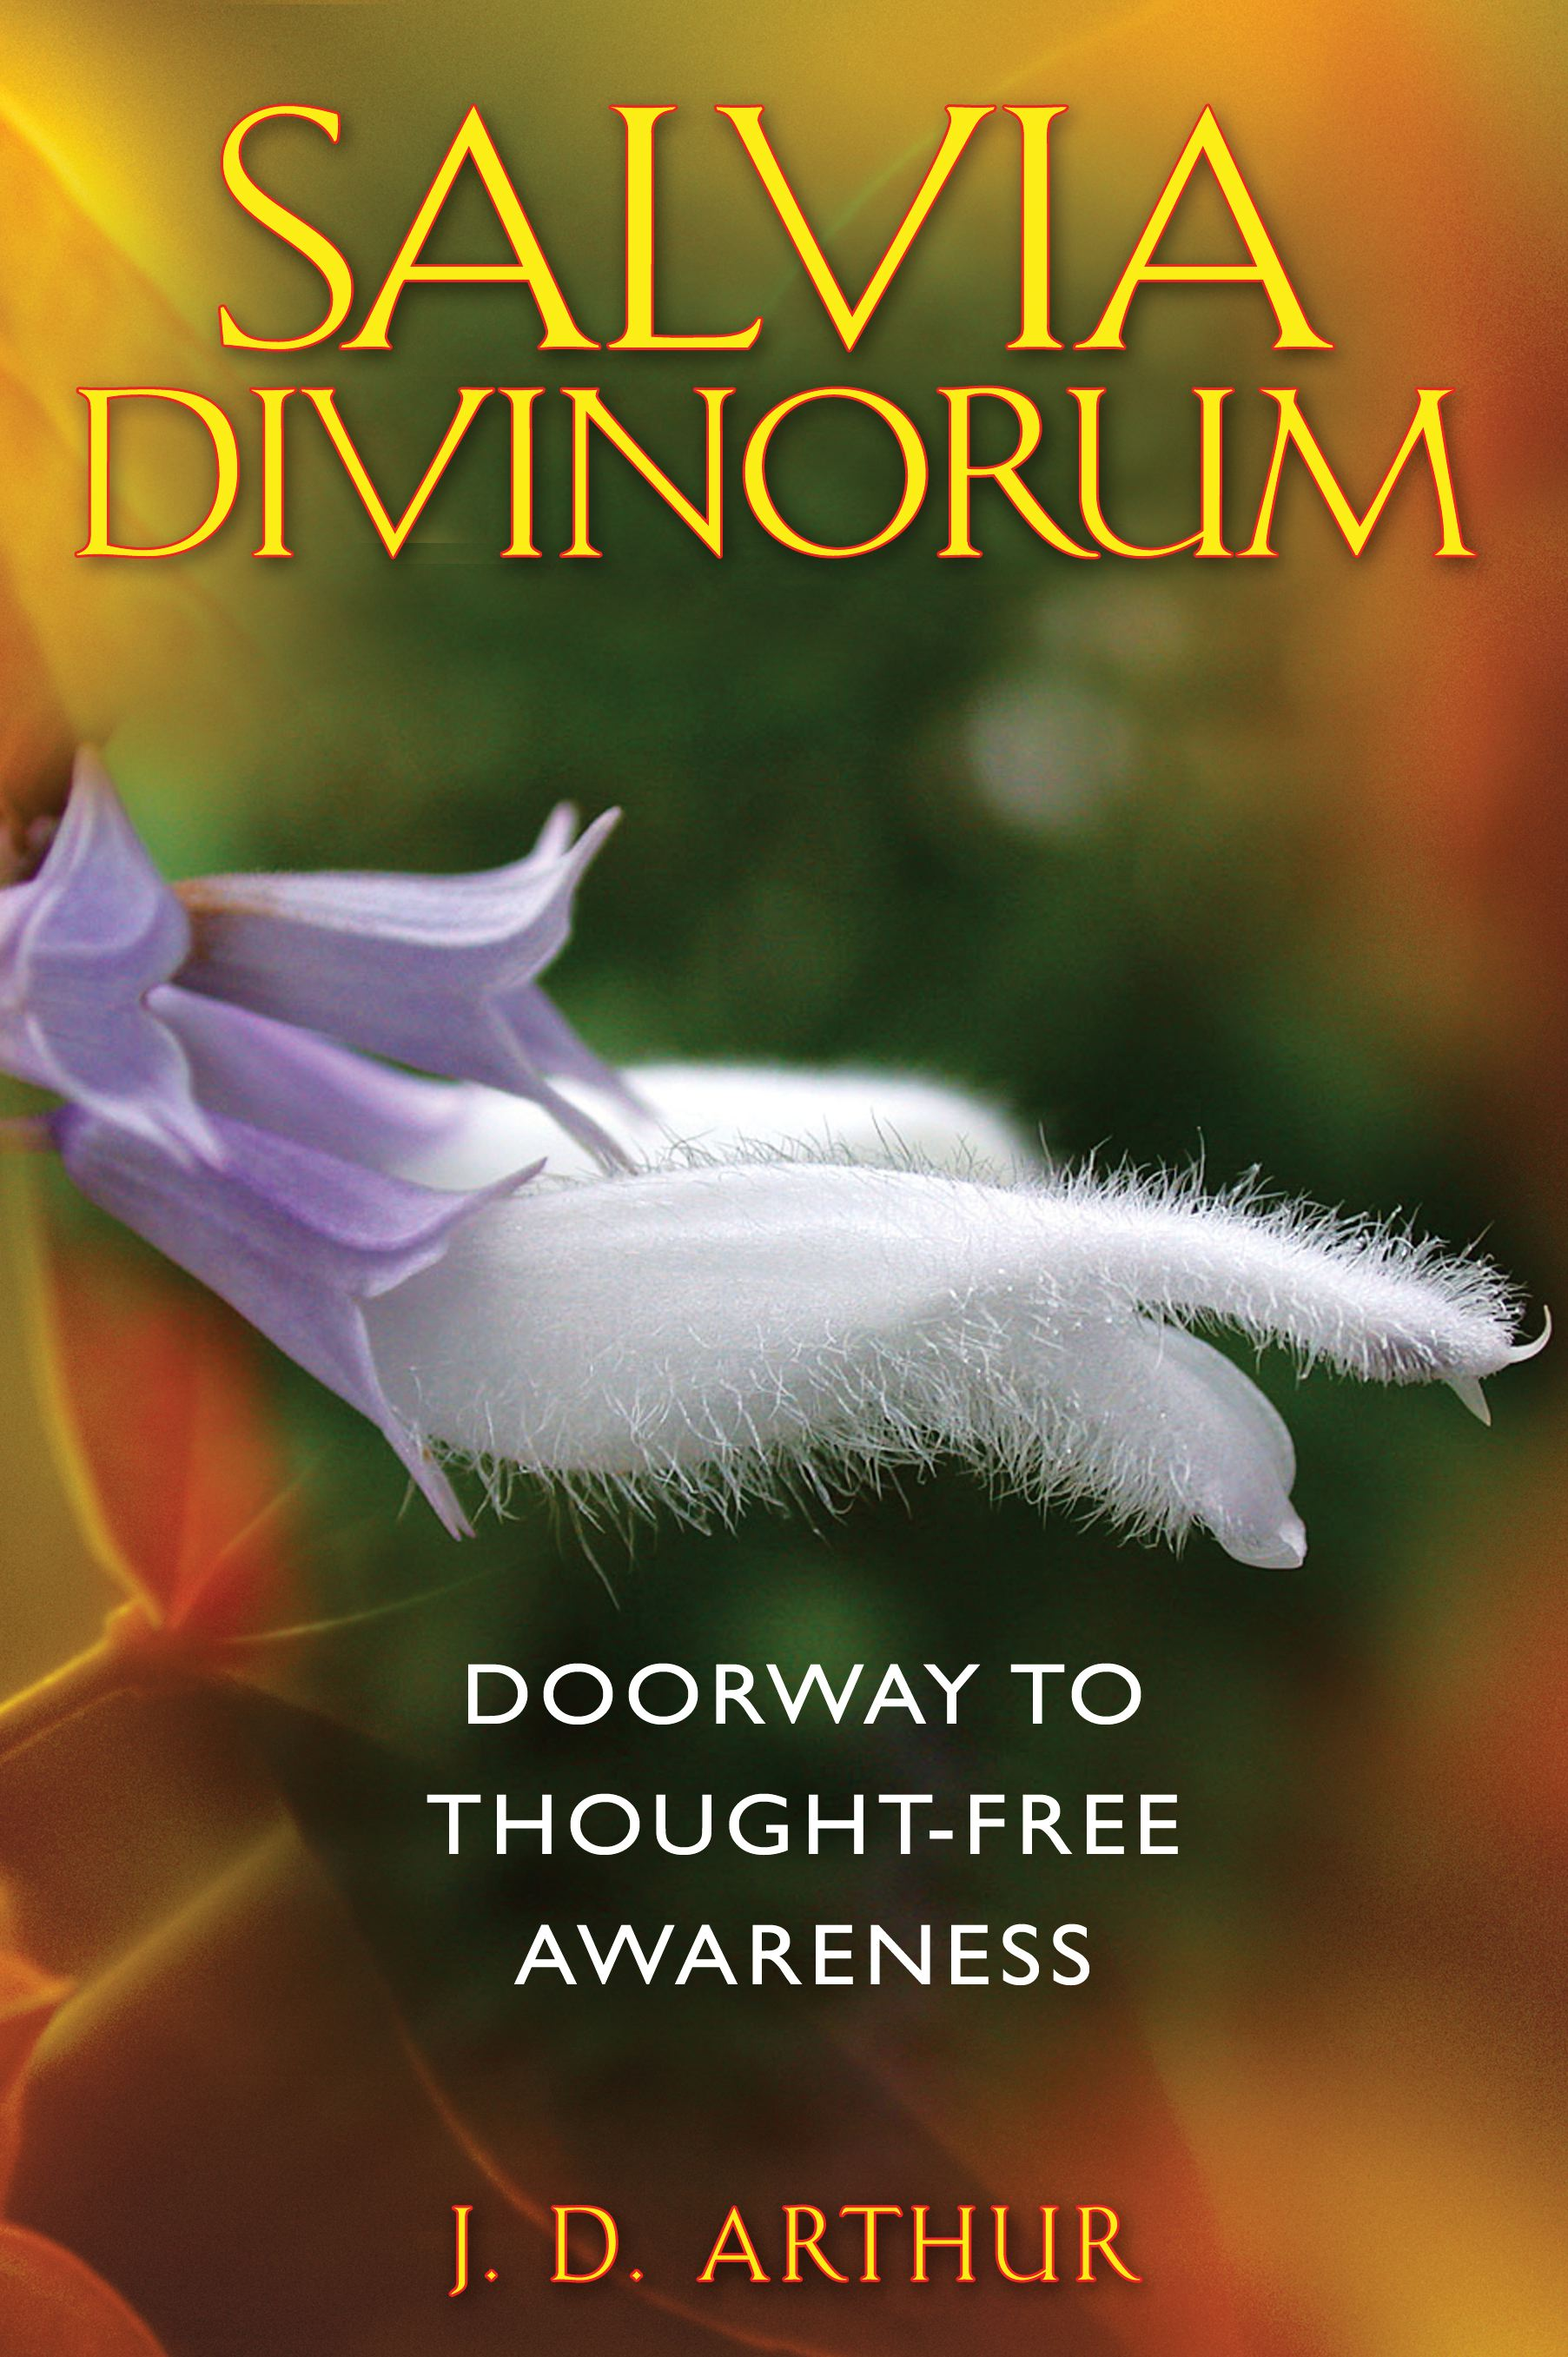 Salvia-divinorum-9781594773471_hr